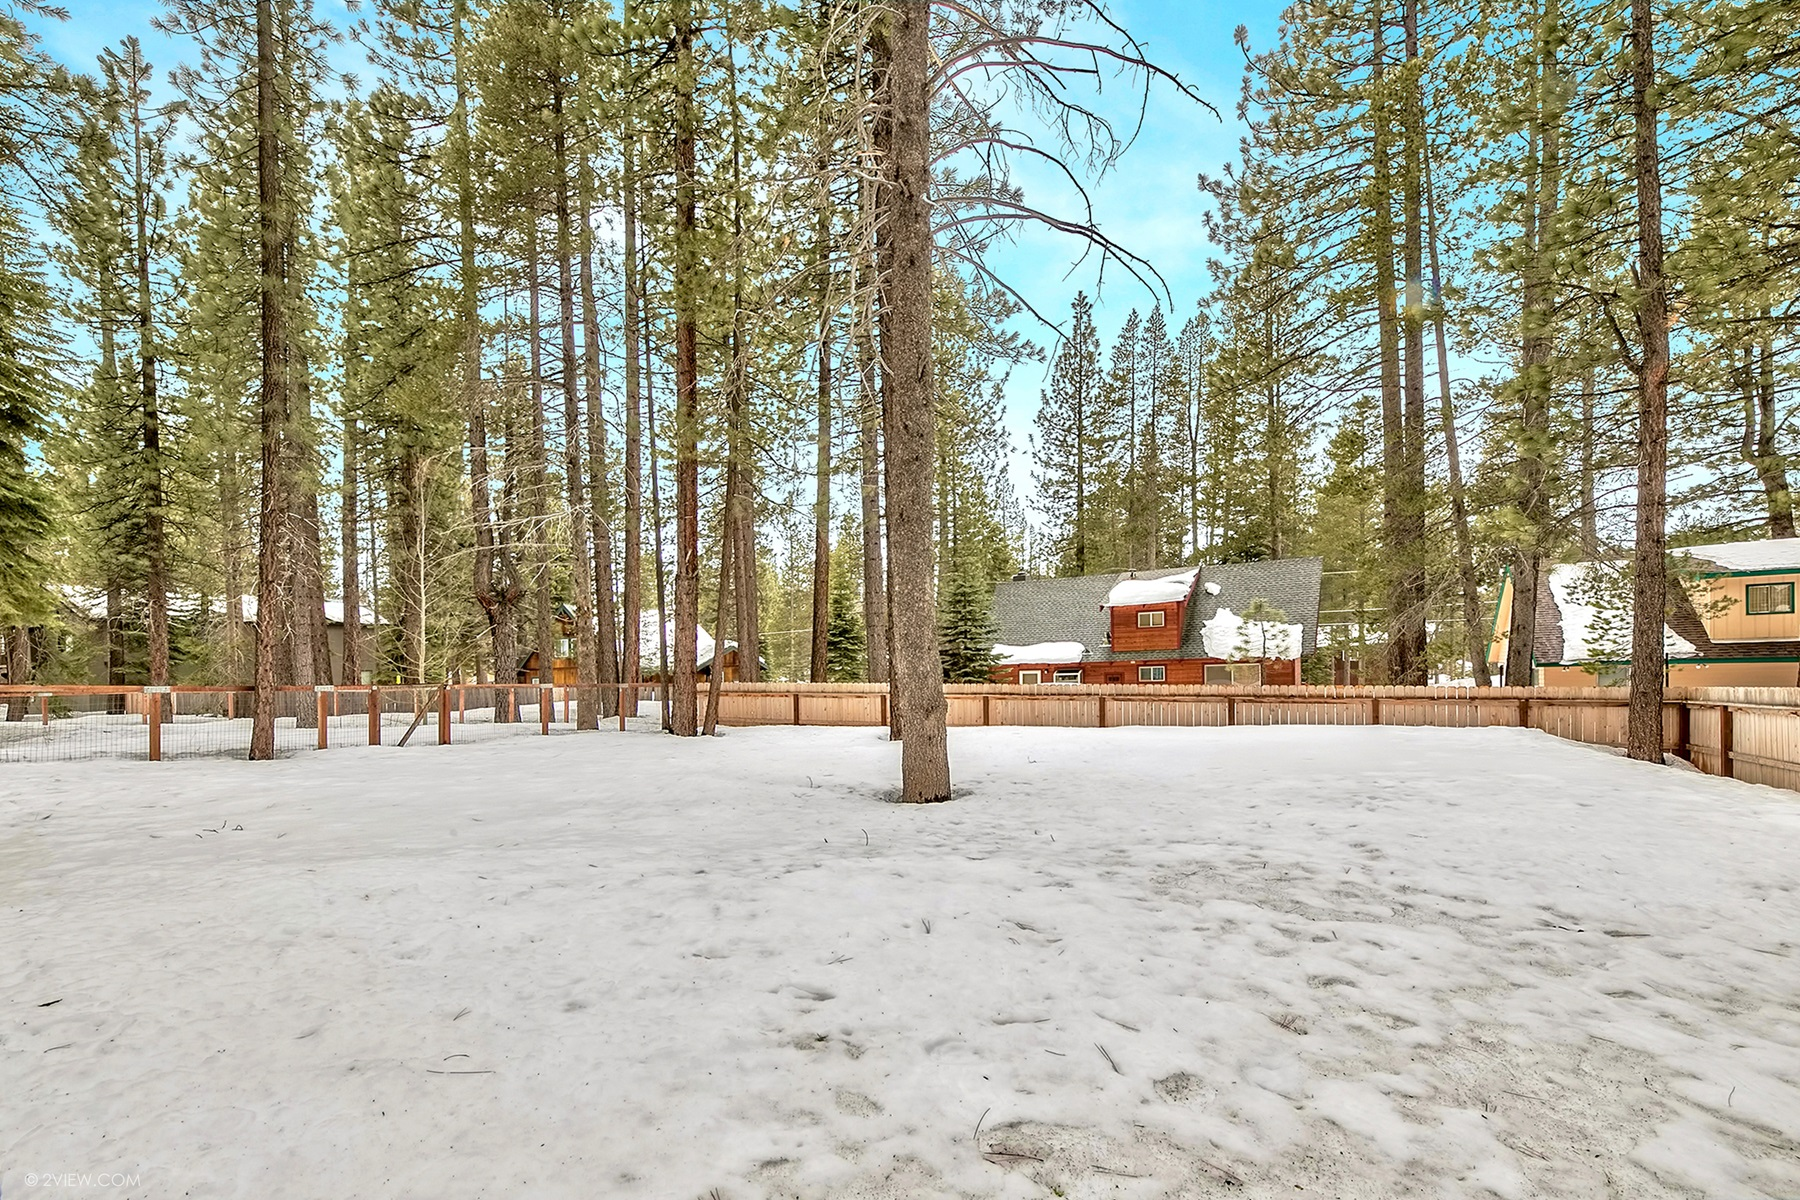 Additional photo for property listing at 1798 Saponi Street, South Lake Tahoe, CA 96150 1798 Saponi Street South Lake Tahoe, California 96150 United States